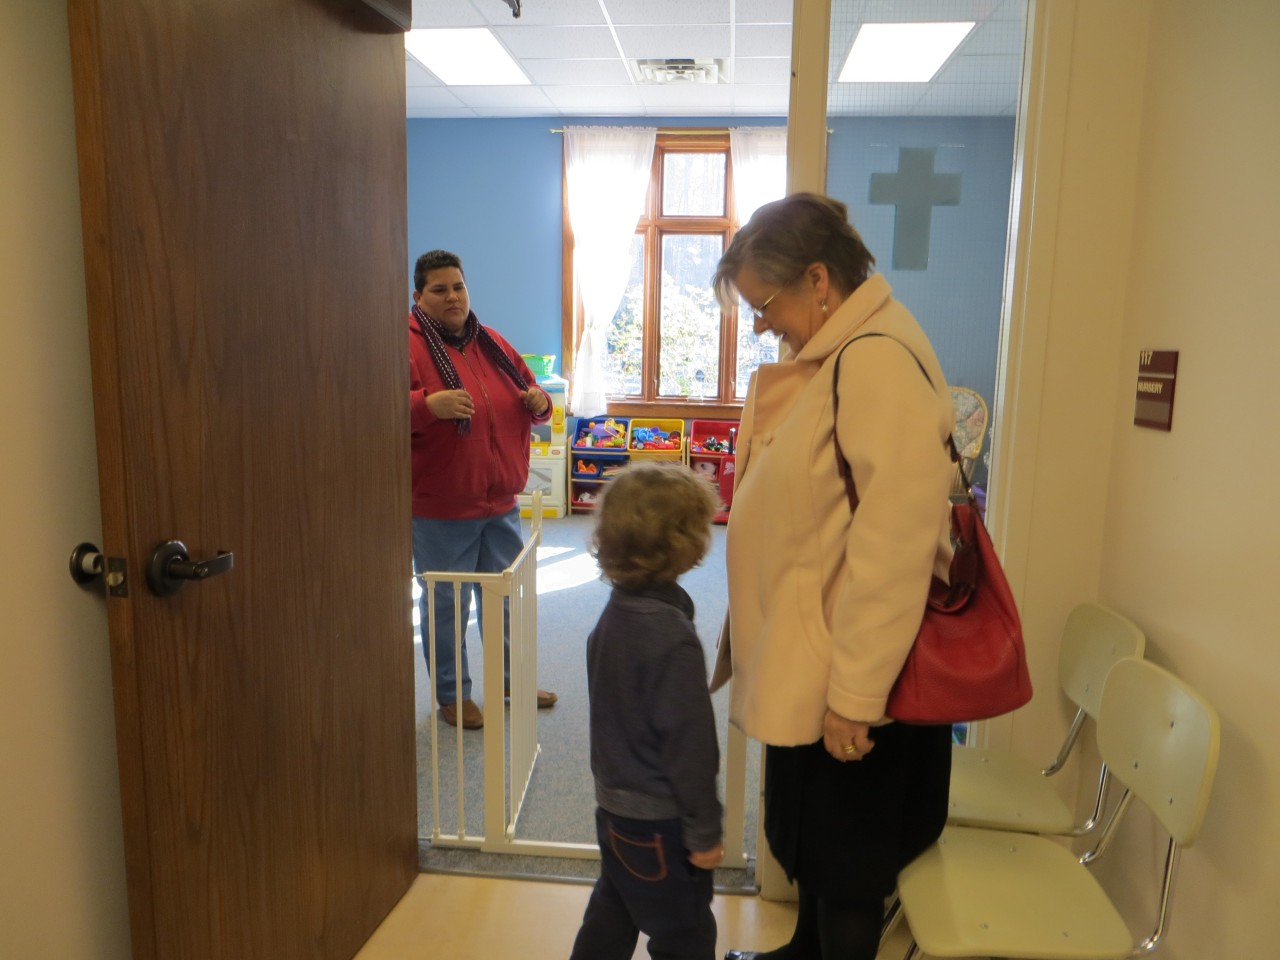 Nanny Nina greets our youngest parishioners at the door to the nursery.